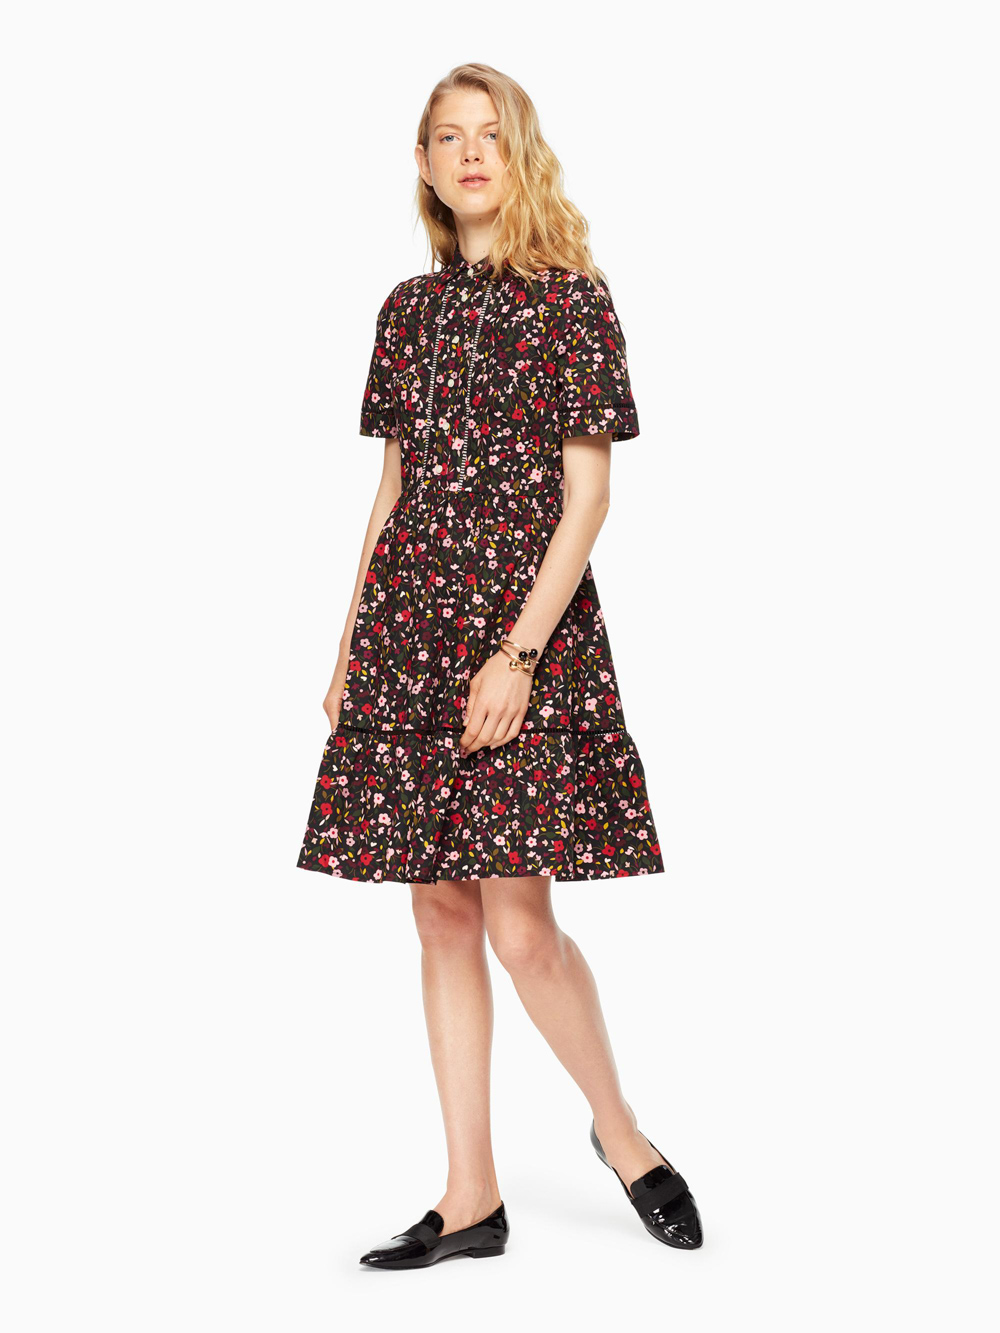 kate spade new yorkのMA CHERIE BOHO FLORAL SHIRTDRESS